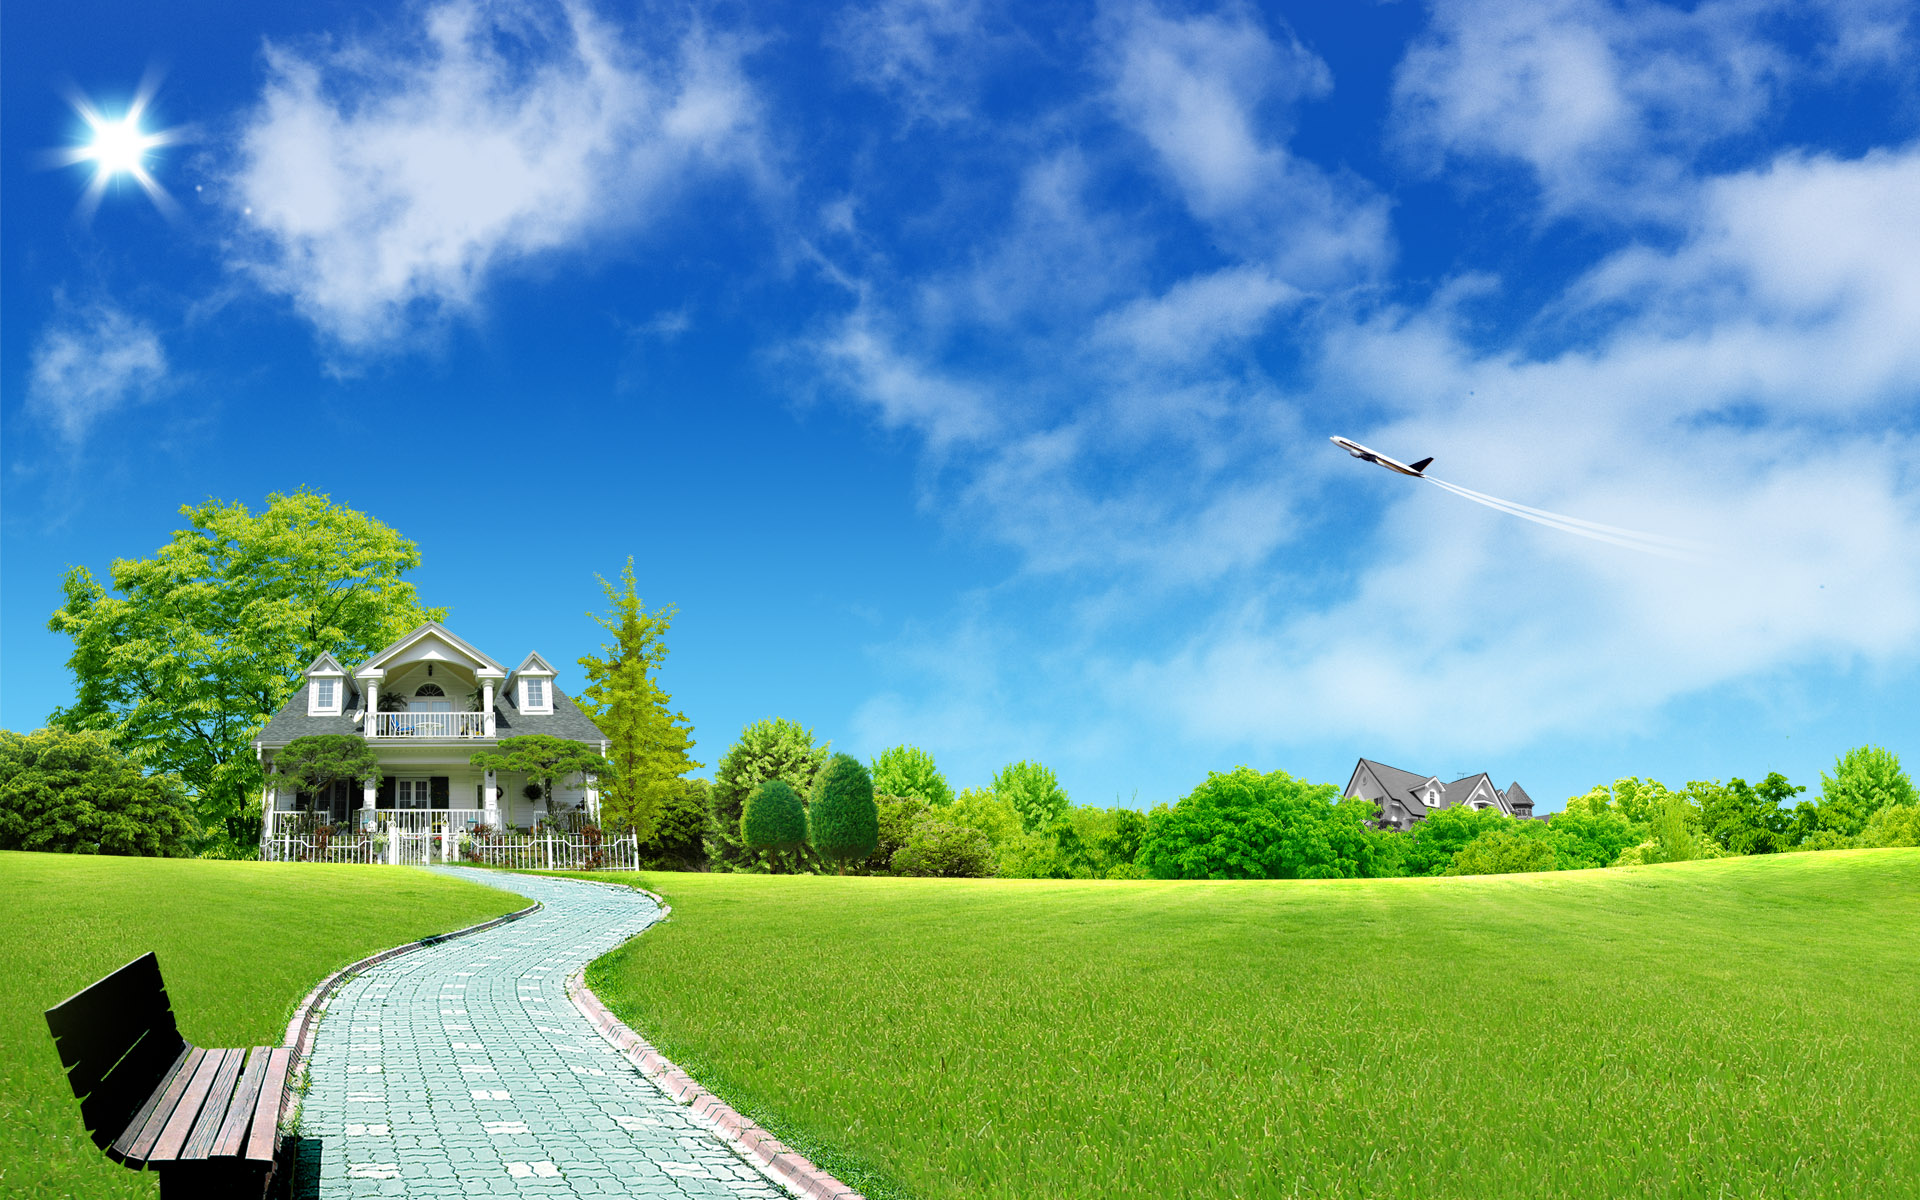 Wallpaper Of A Lovely House In The Green Grassland Free